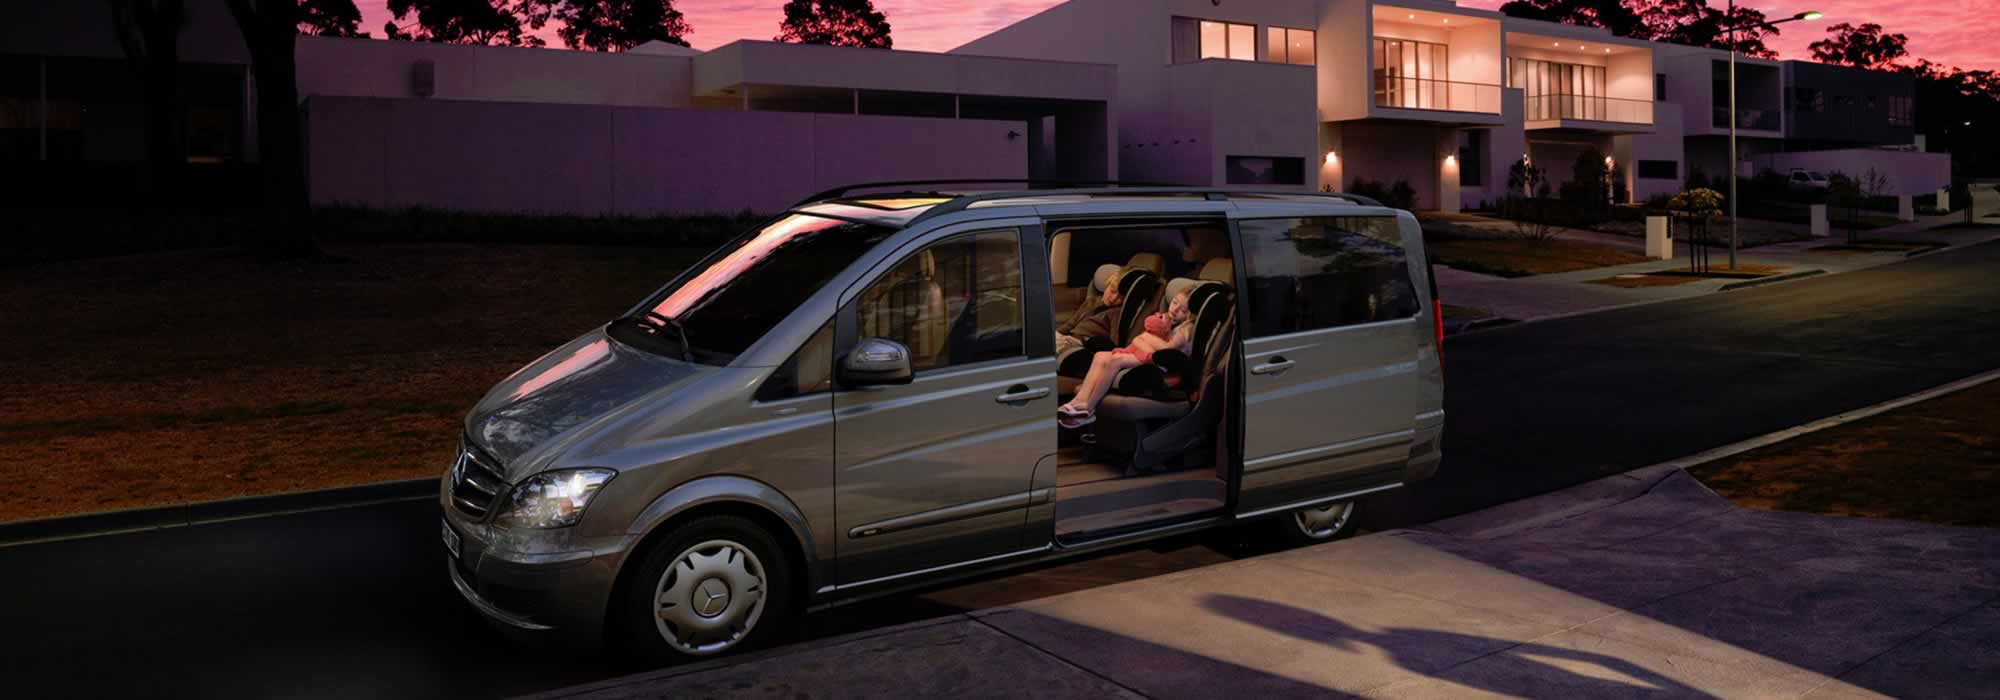 Mercedes Viano Hire London